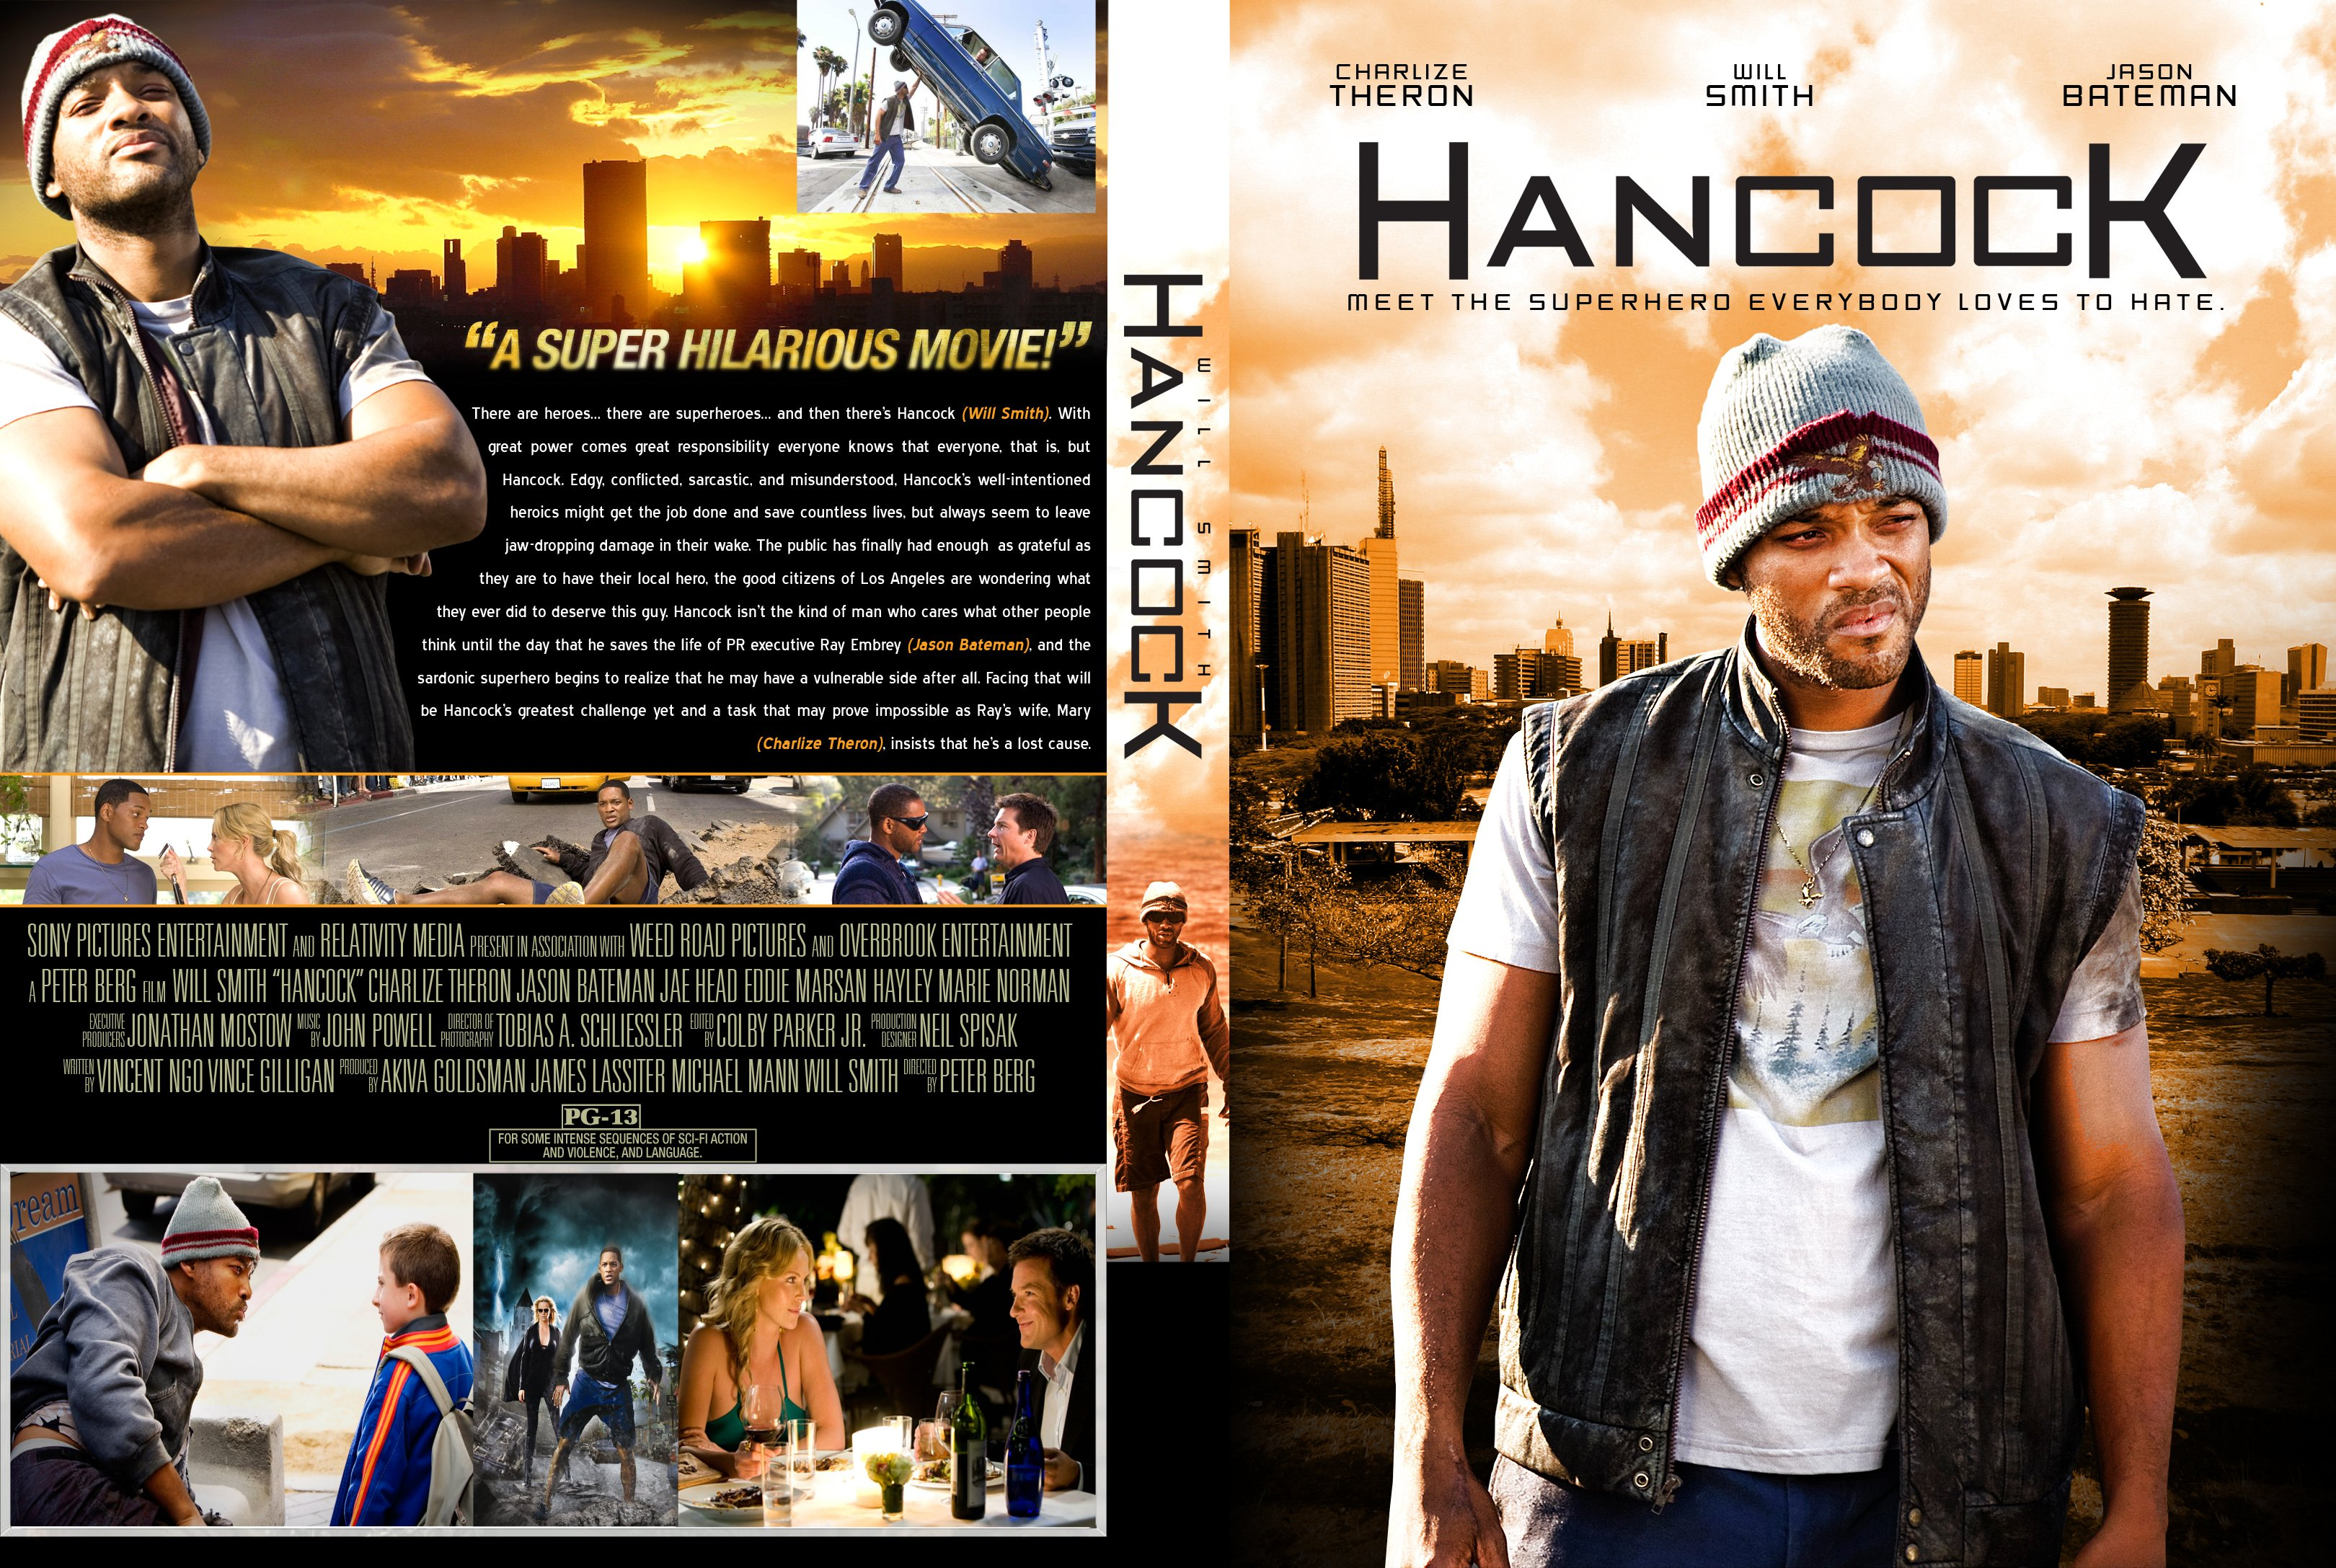 film, ryemovies, ganool movies, 2014, download free, comedy, parody, gratis, subtitle, terjemah indonesia, Hancock 2008, Will Smith, Michael Mann, Akiva Goldsman, James Lassiter